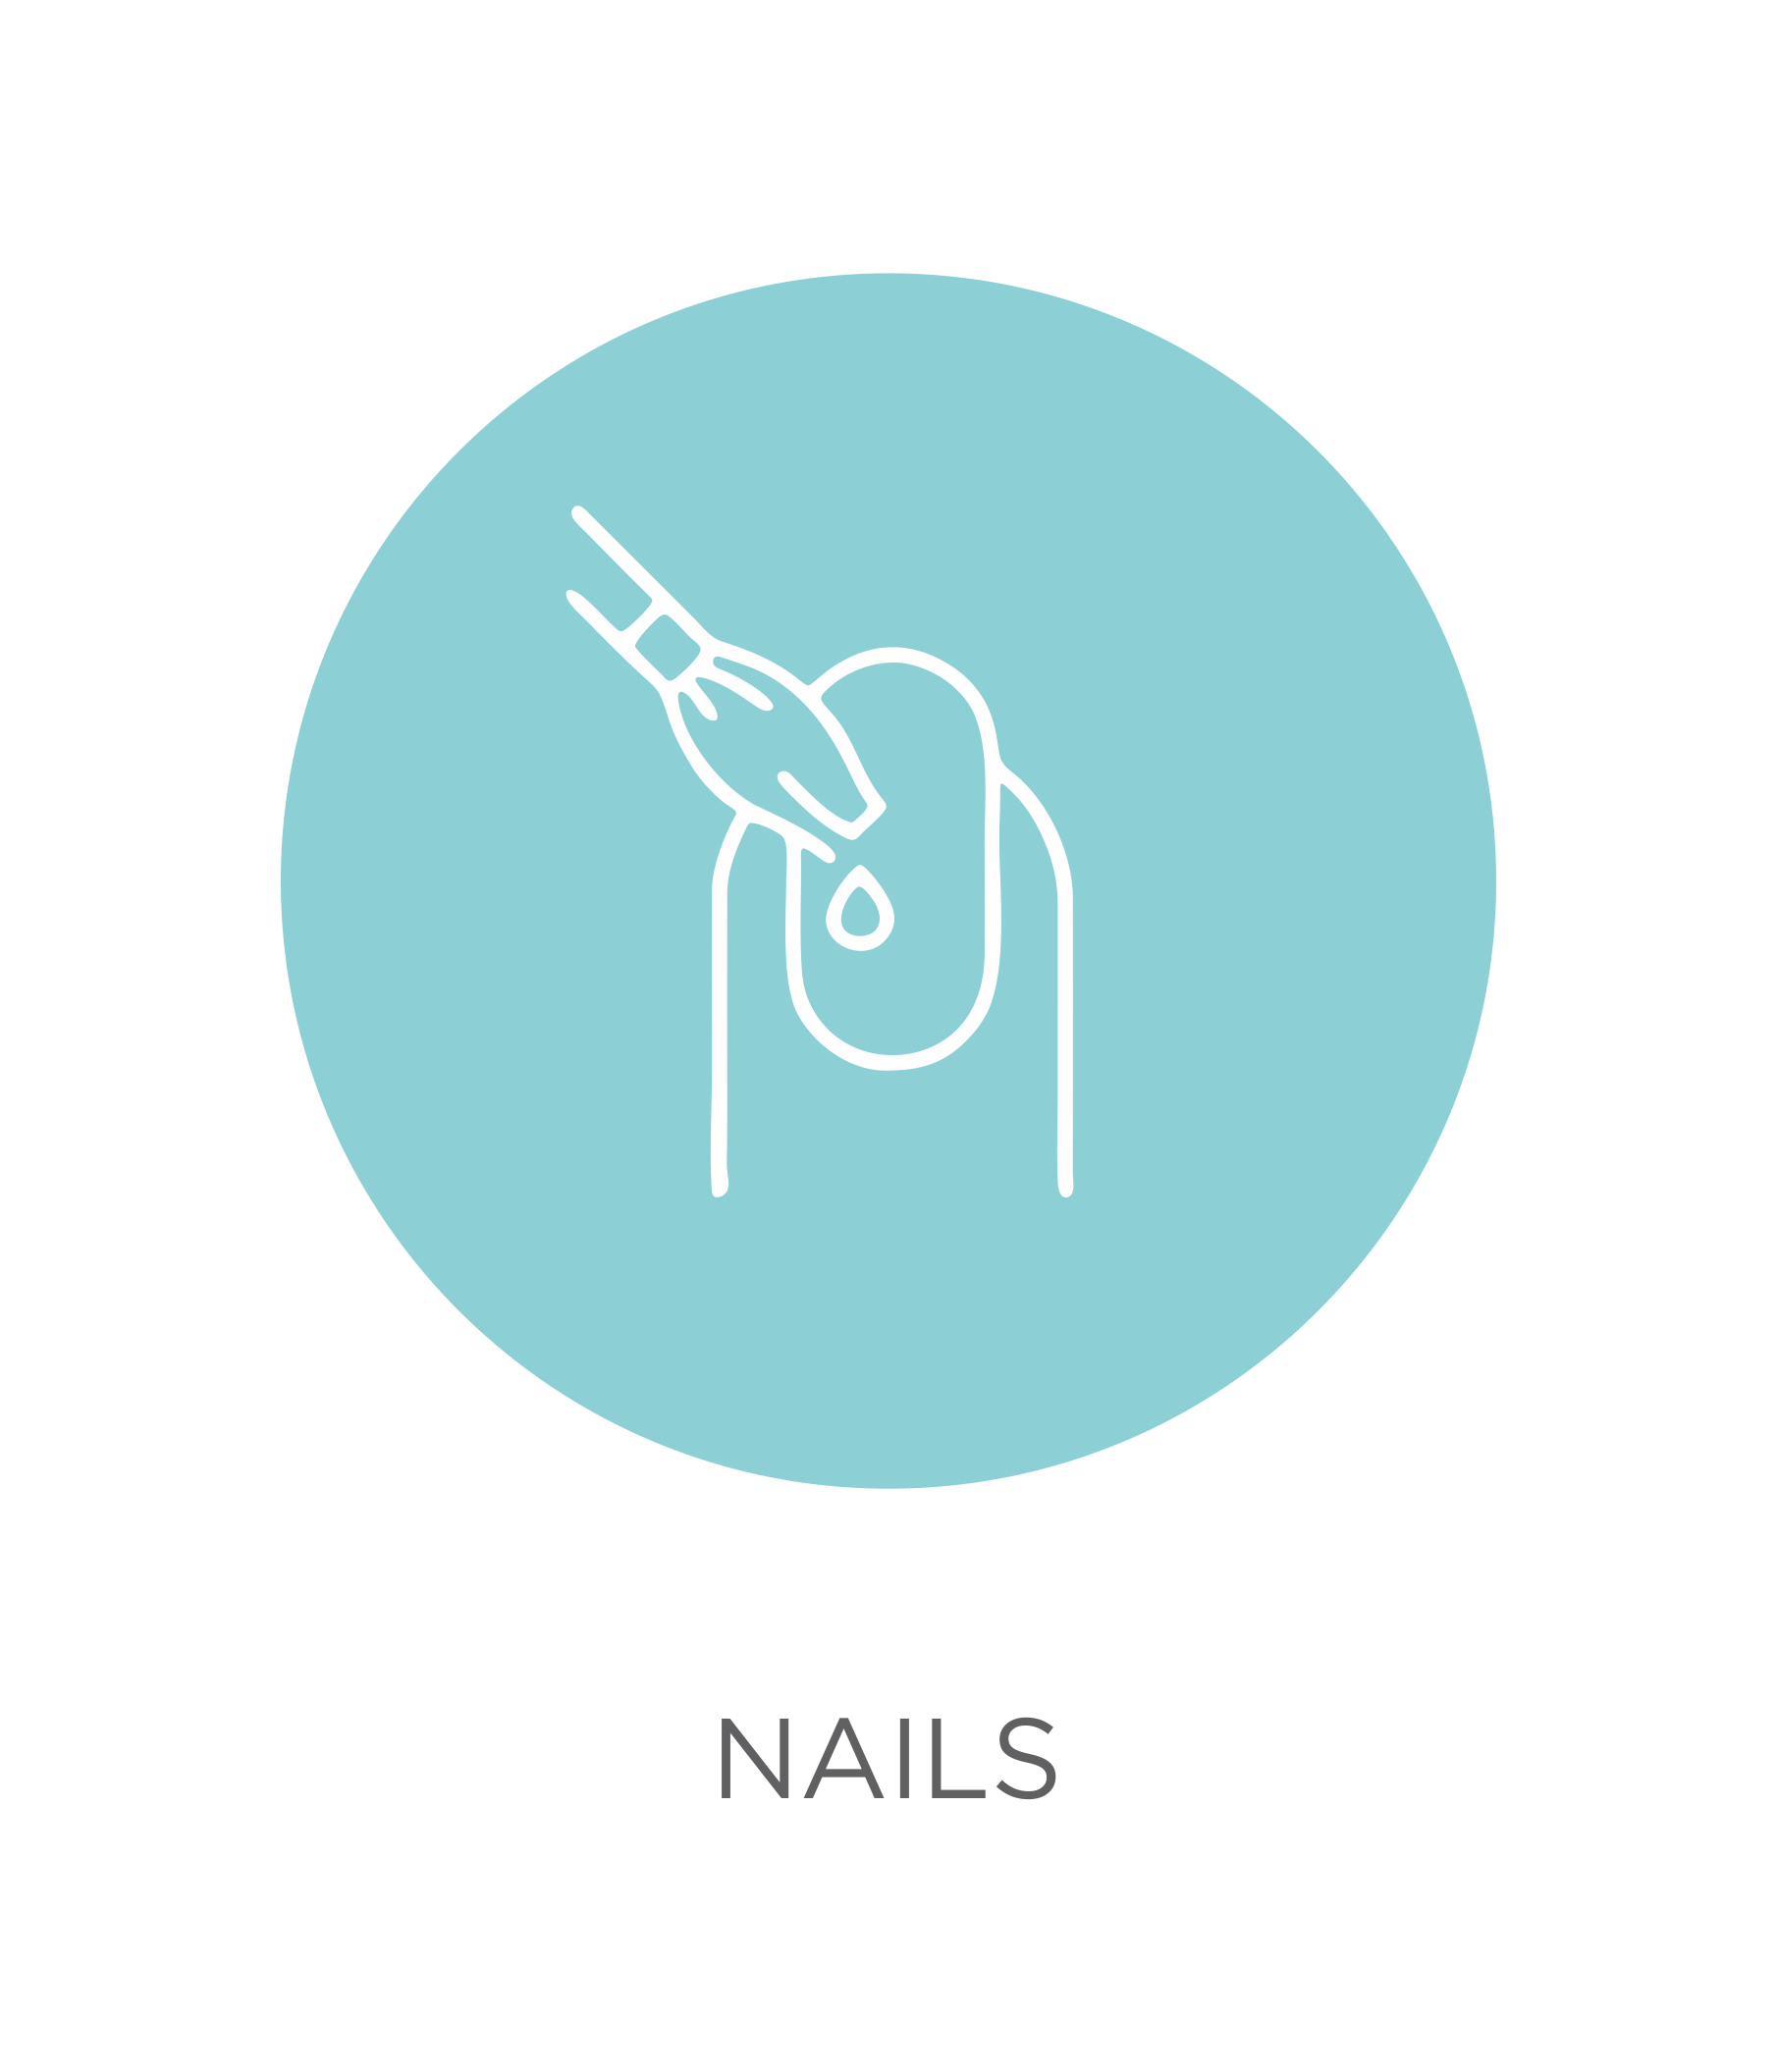 nails icon.png